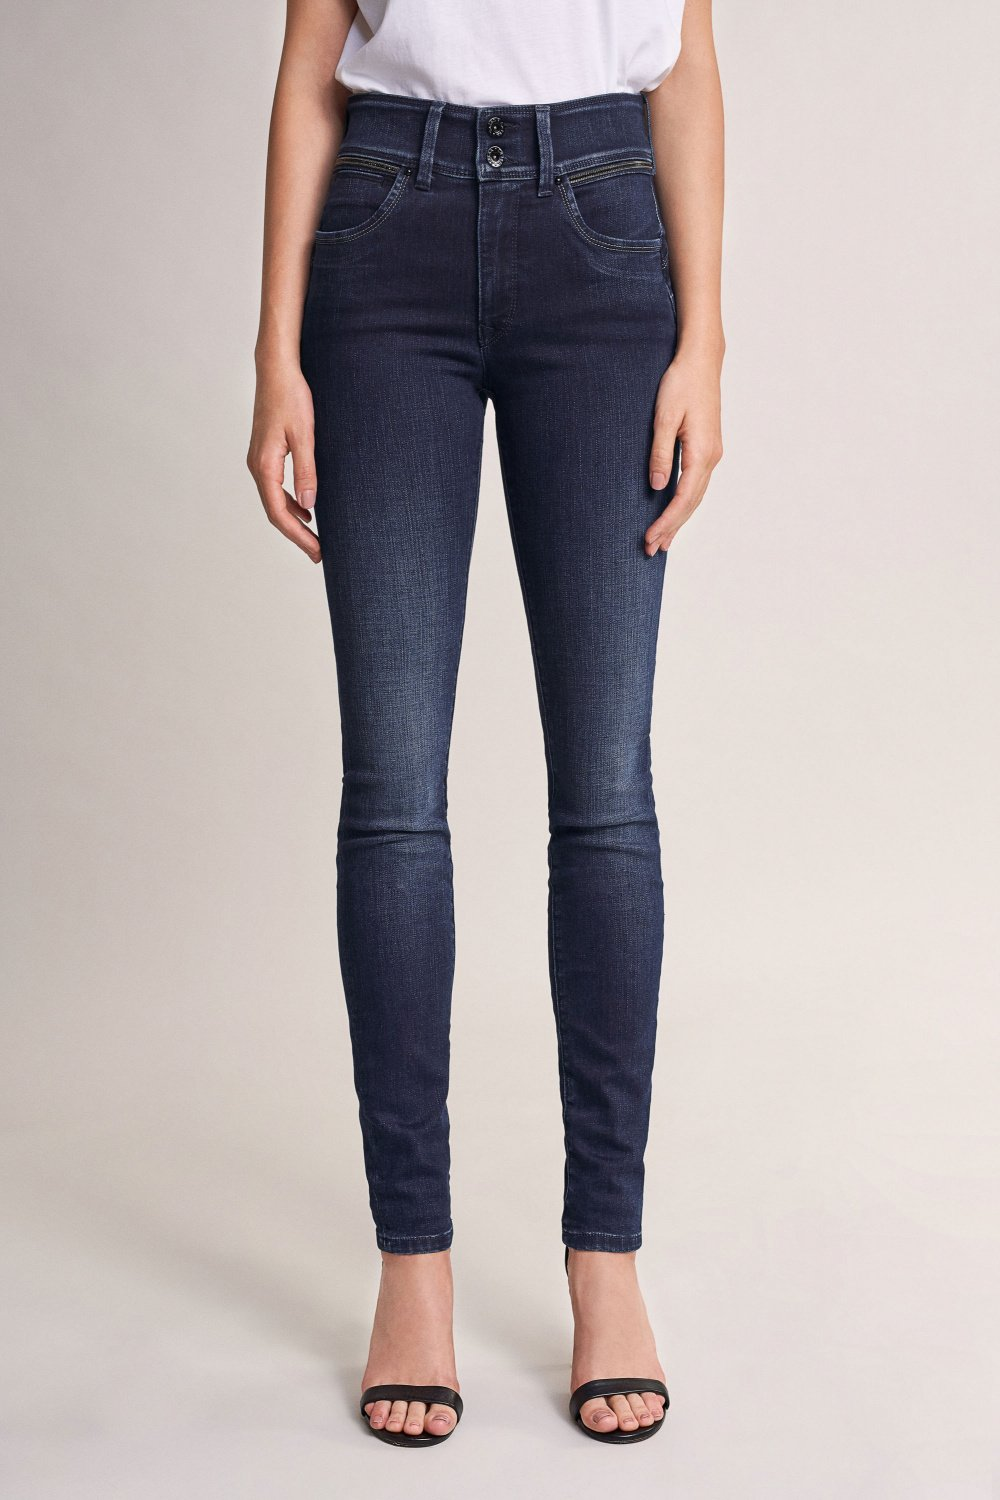 Push In Secret skinny jeans with sparkle on belt - Salsa